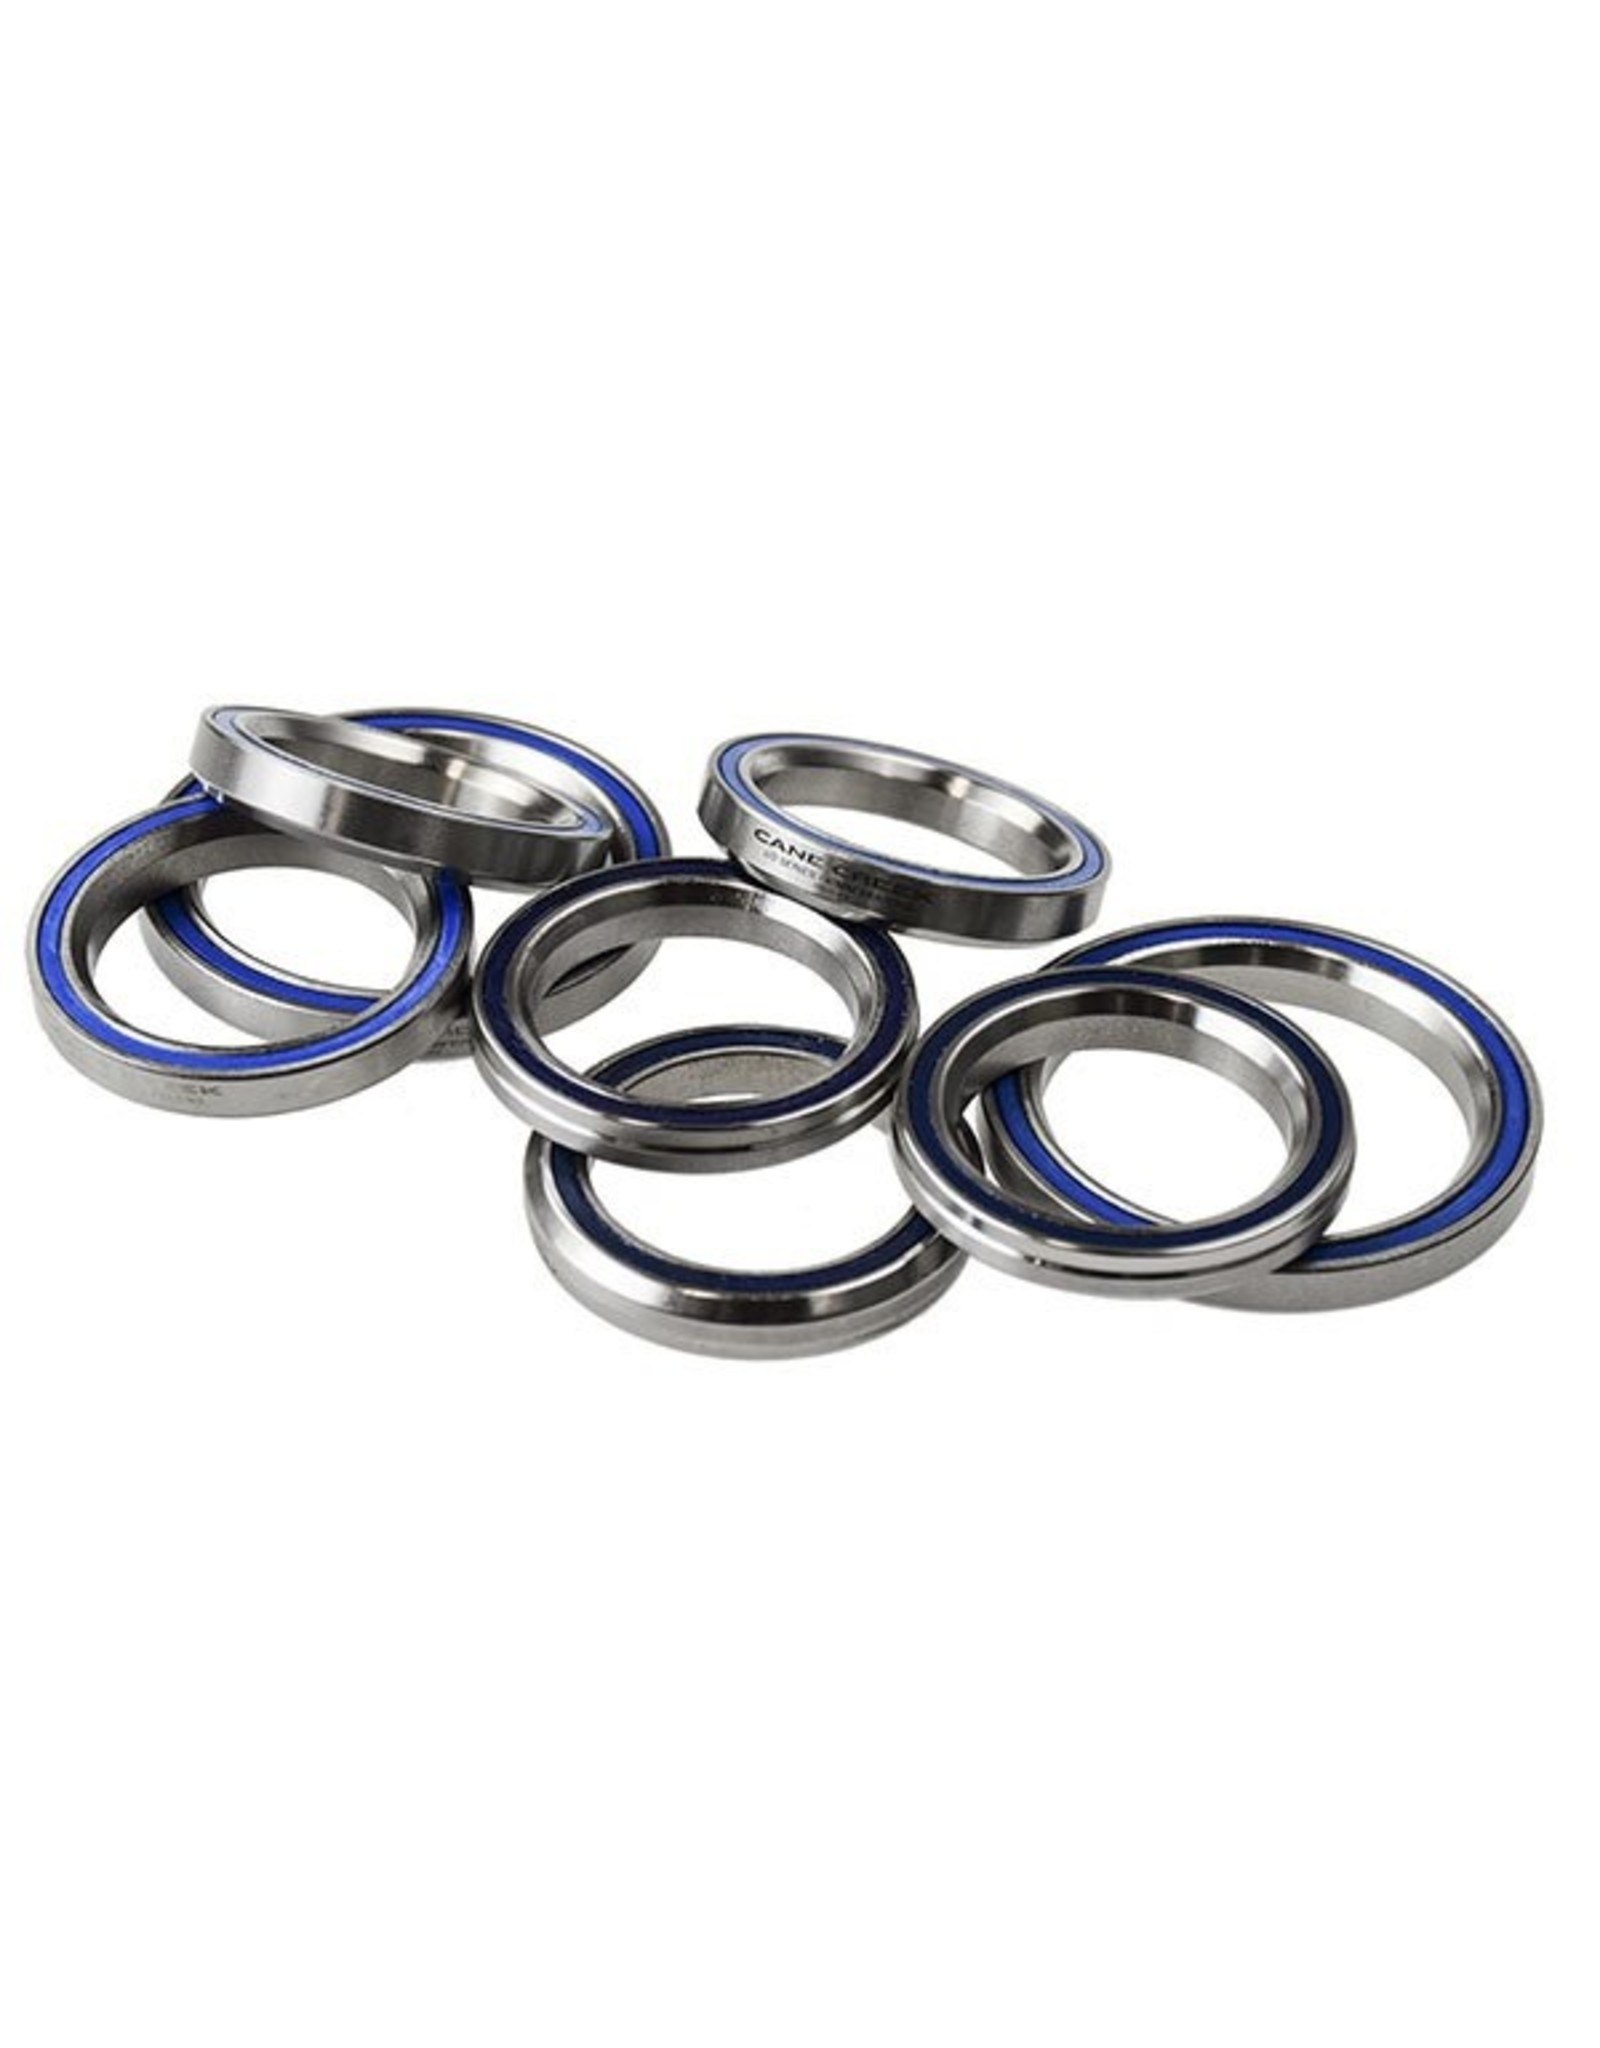 Cane Creek Cane Creek 110 Stainless Replacement Bearings